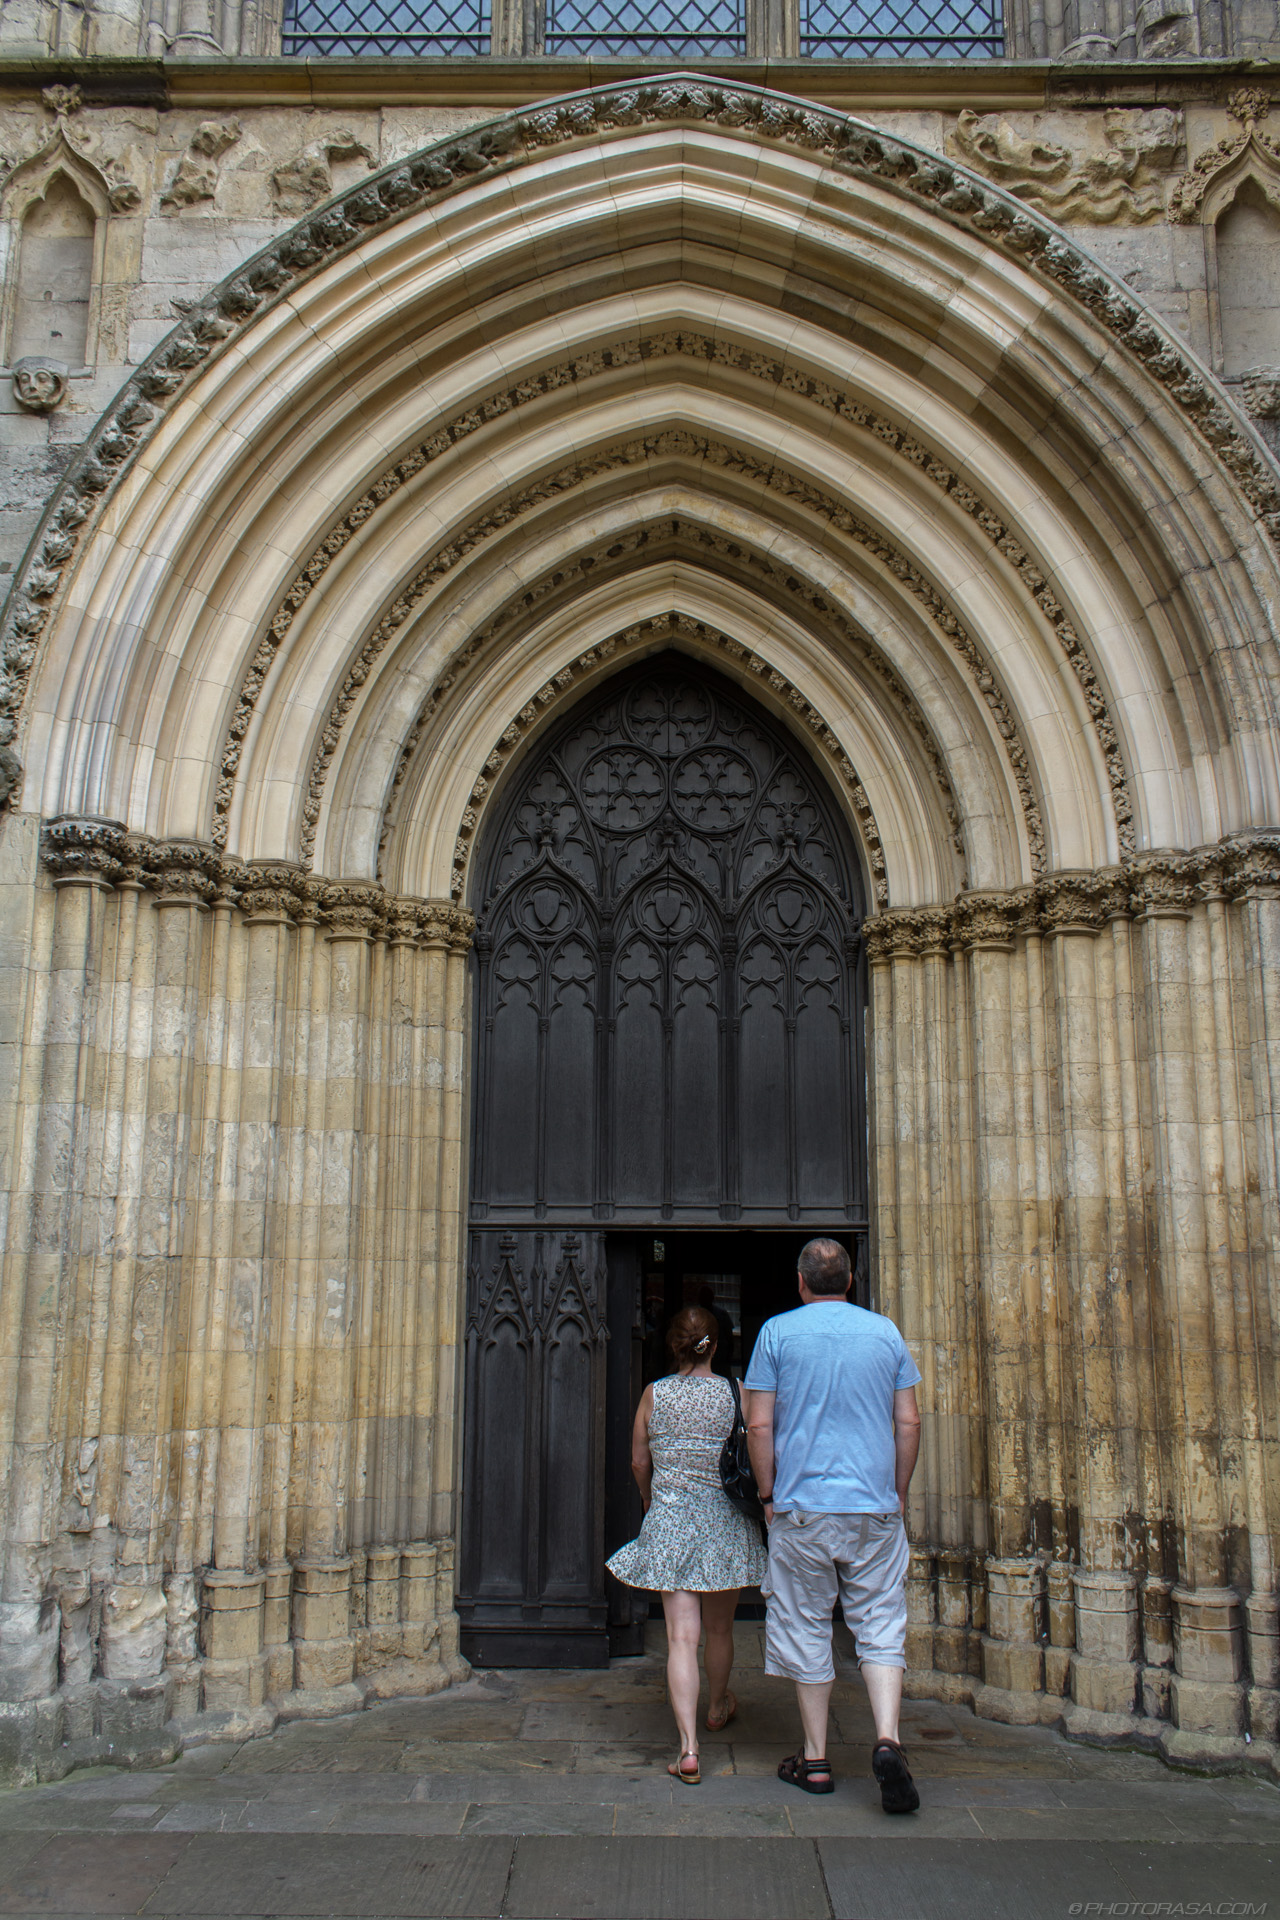 https://photorasa.com/yorkminster-cathedral/west-entrance-arch/